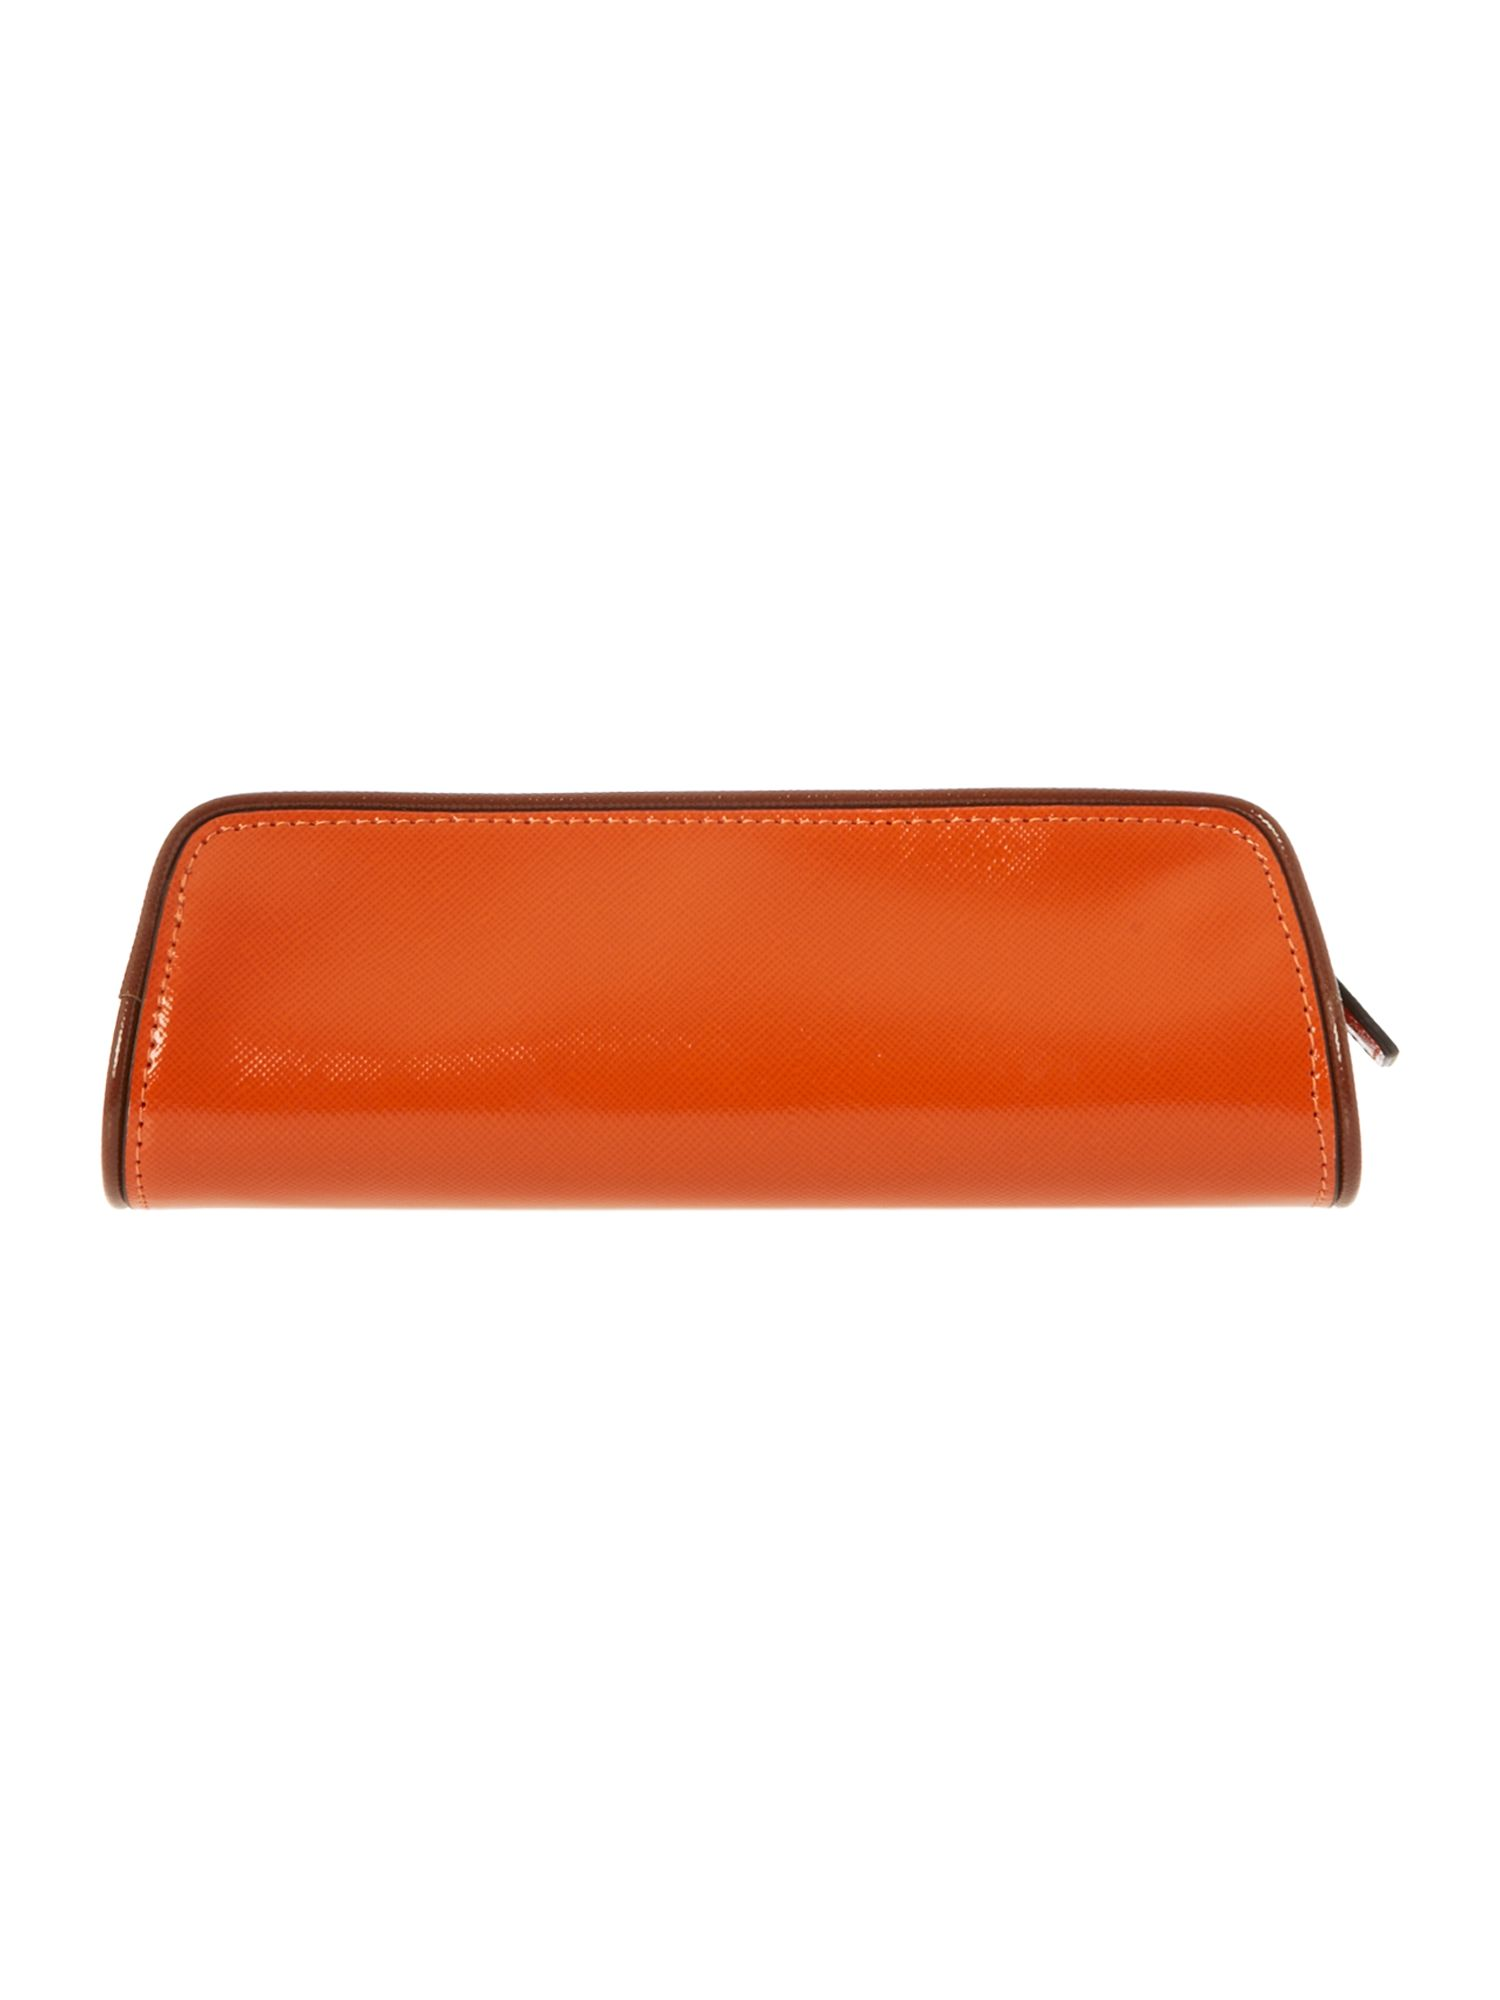 Highlight pencil case